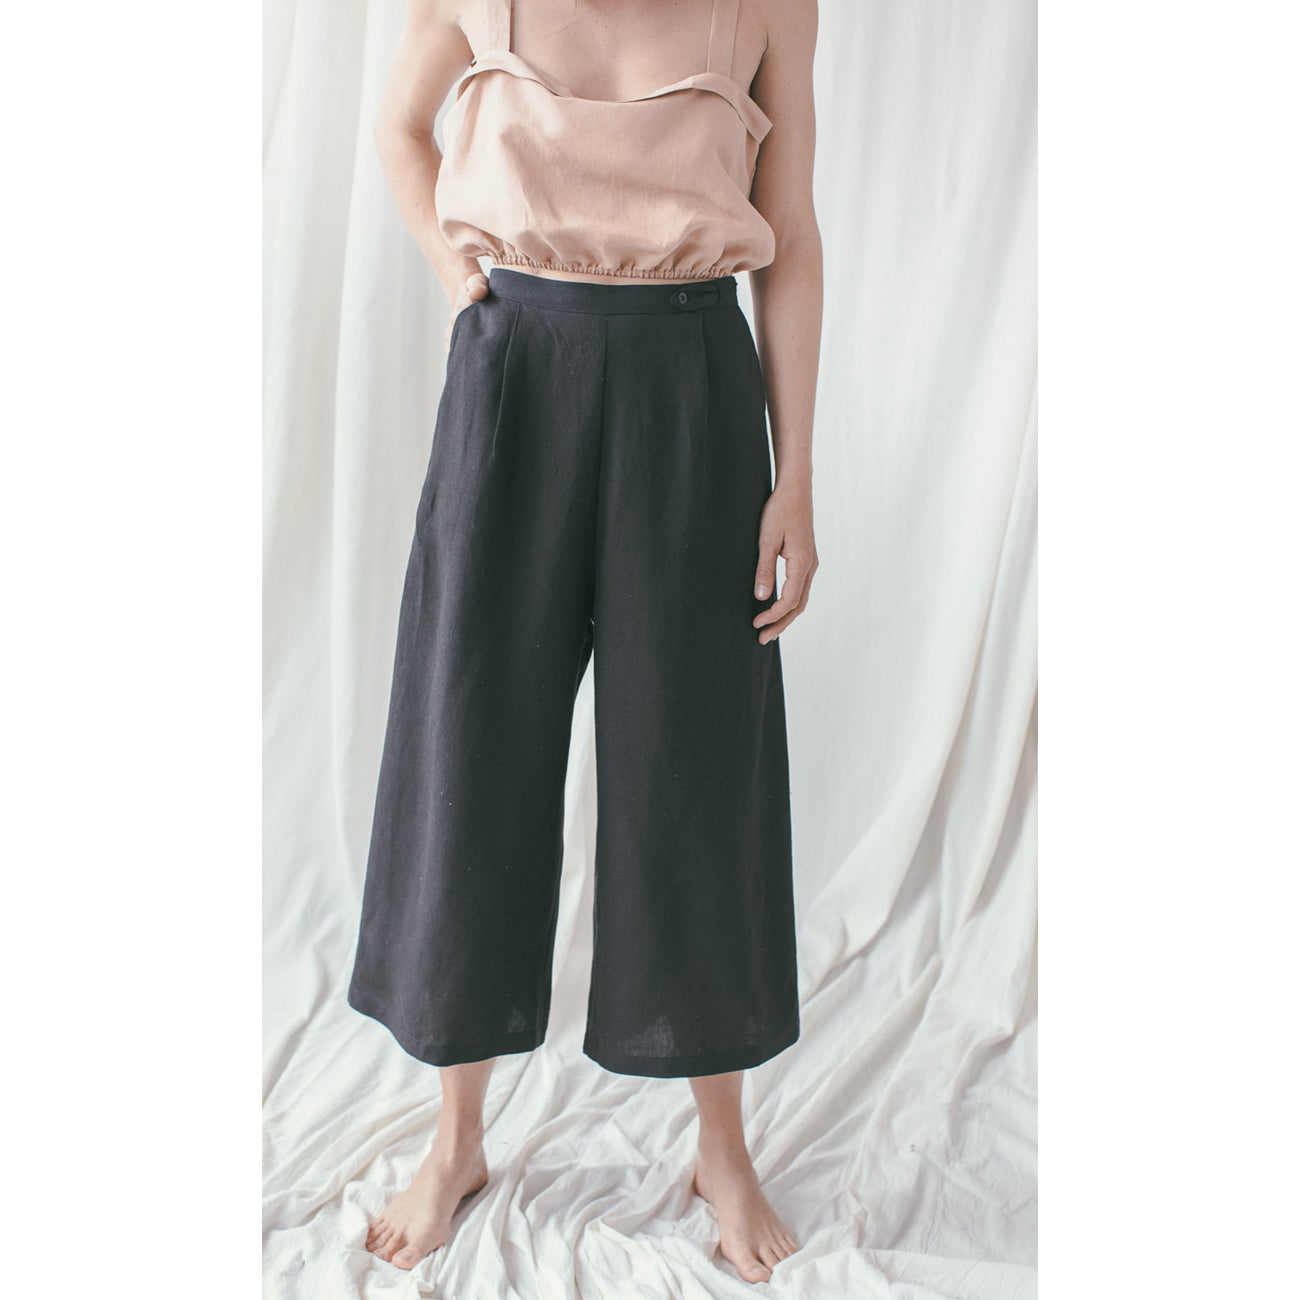 Ozma Studio Trouser in Onyx